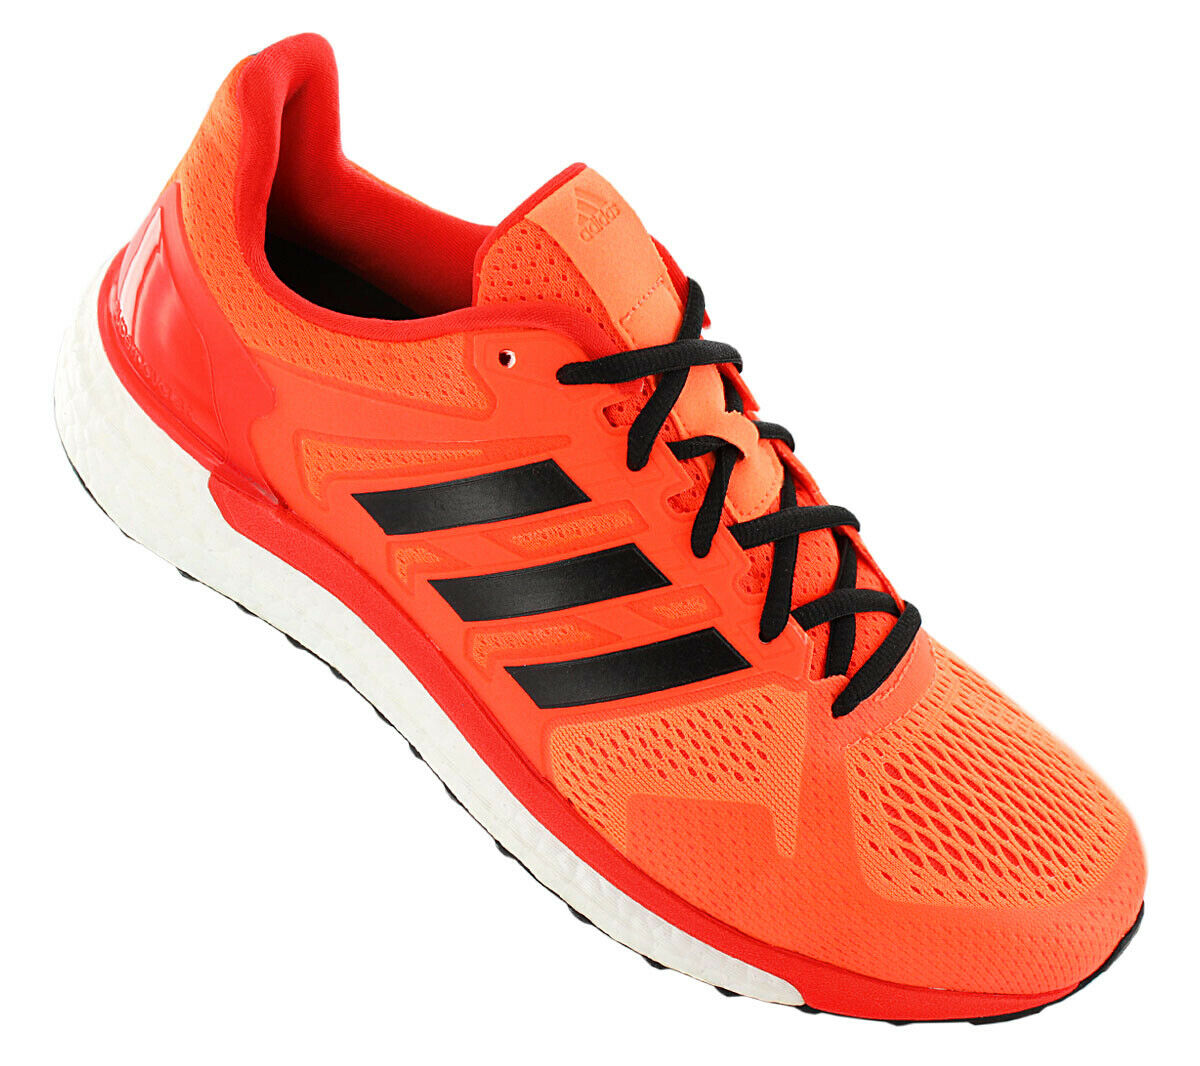 NEW adidas Supernova ST M Boost CG4029 Men´s shoes Trainers Sneakers SALE